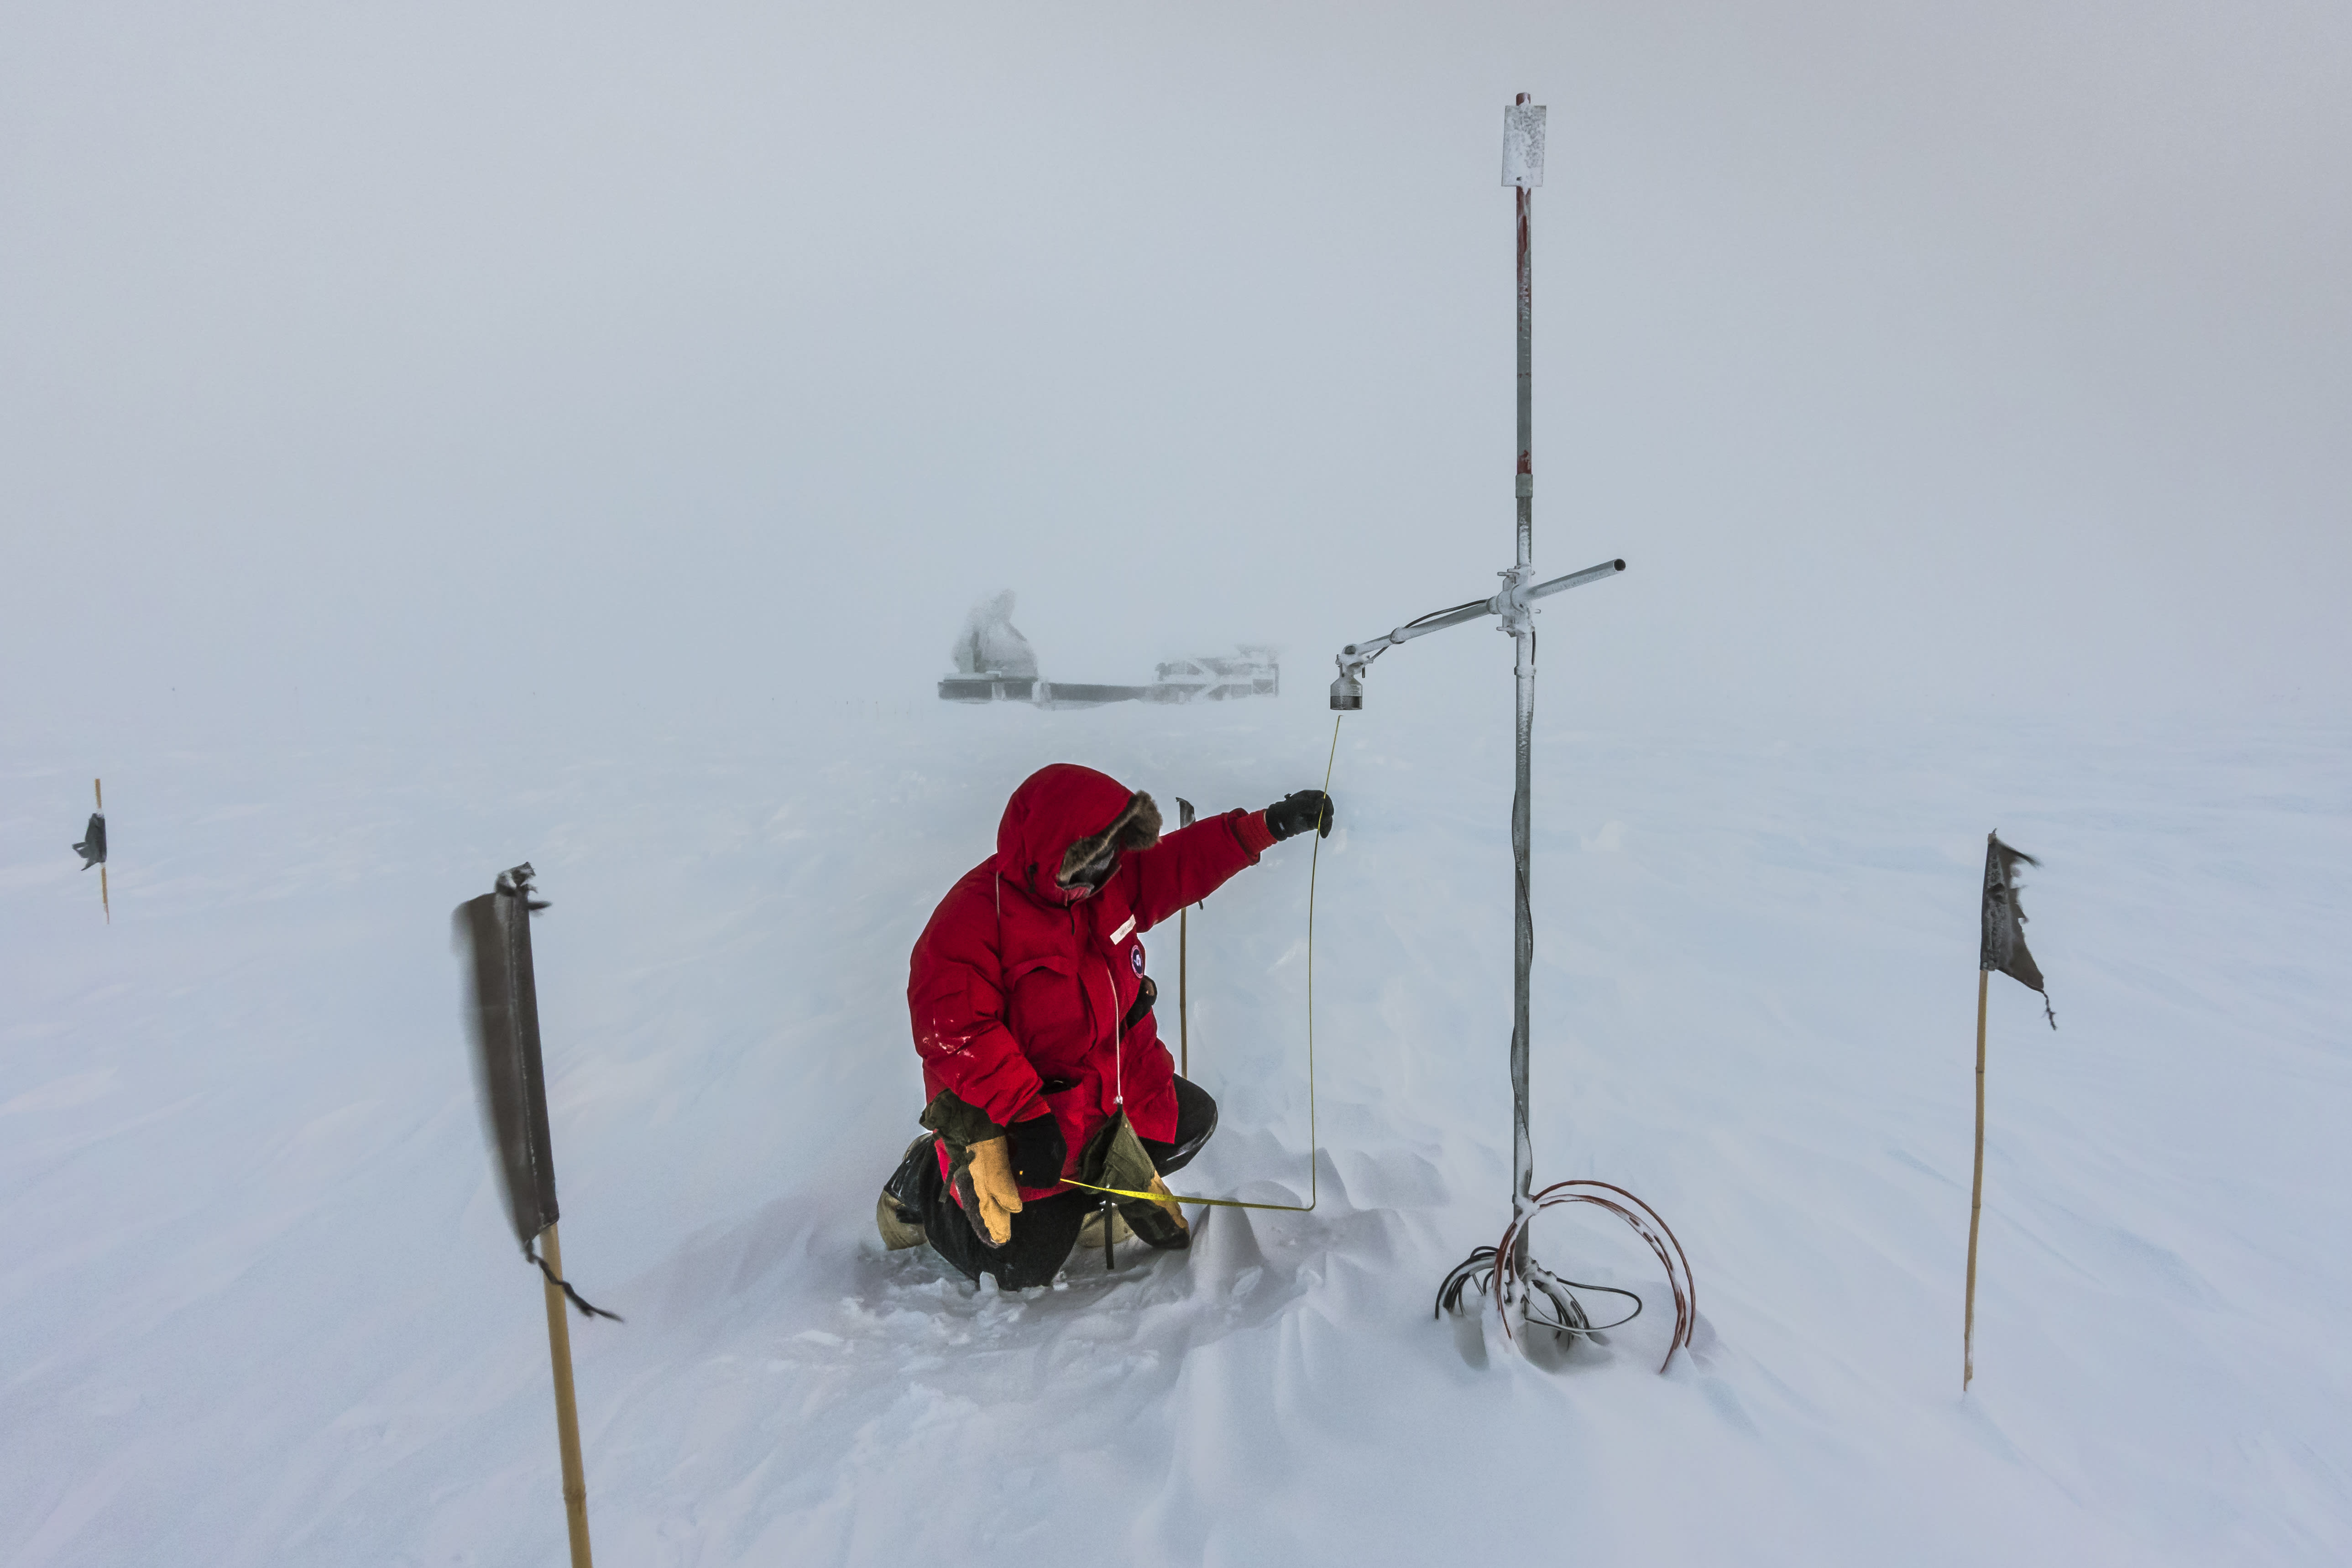 Taking snow measurements at the South Pole.